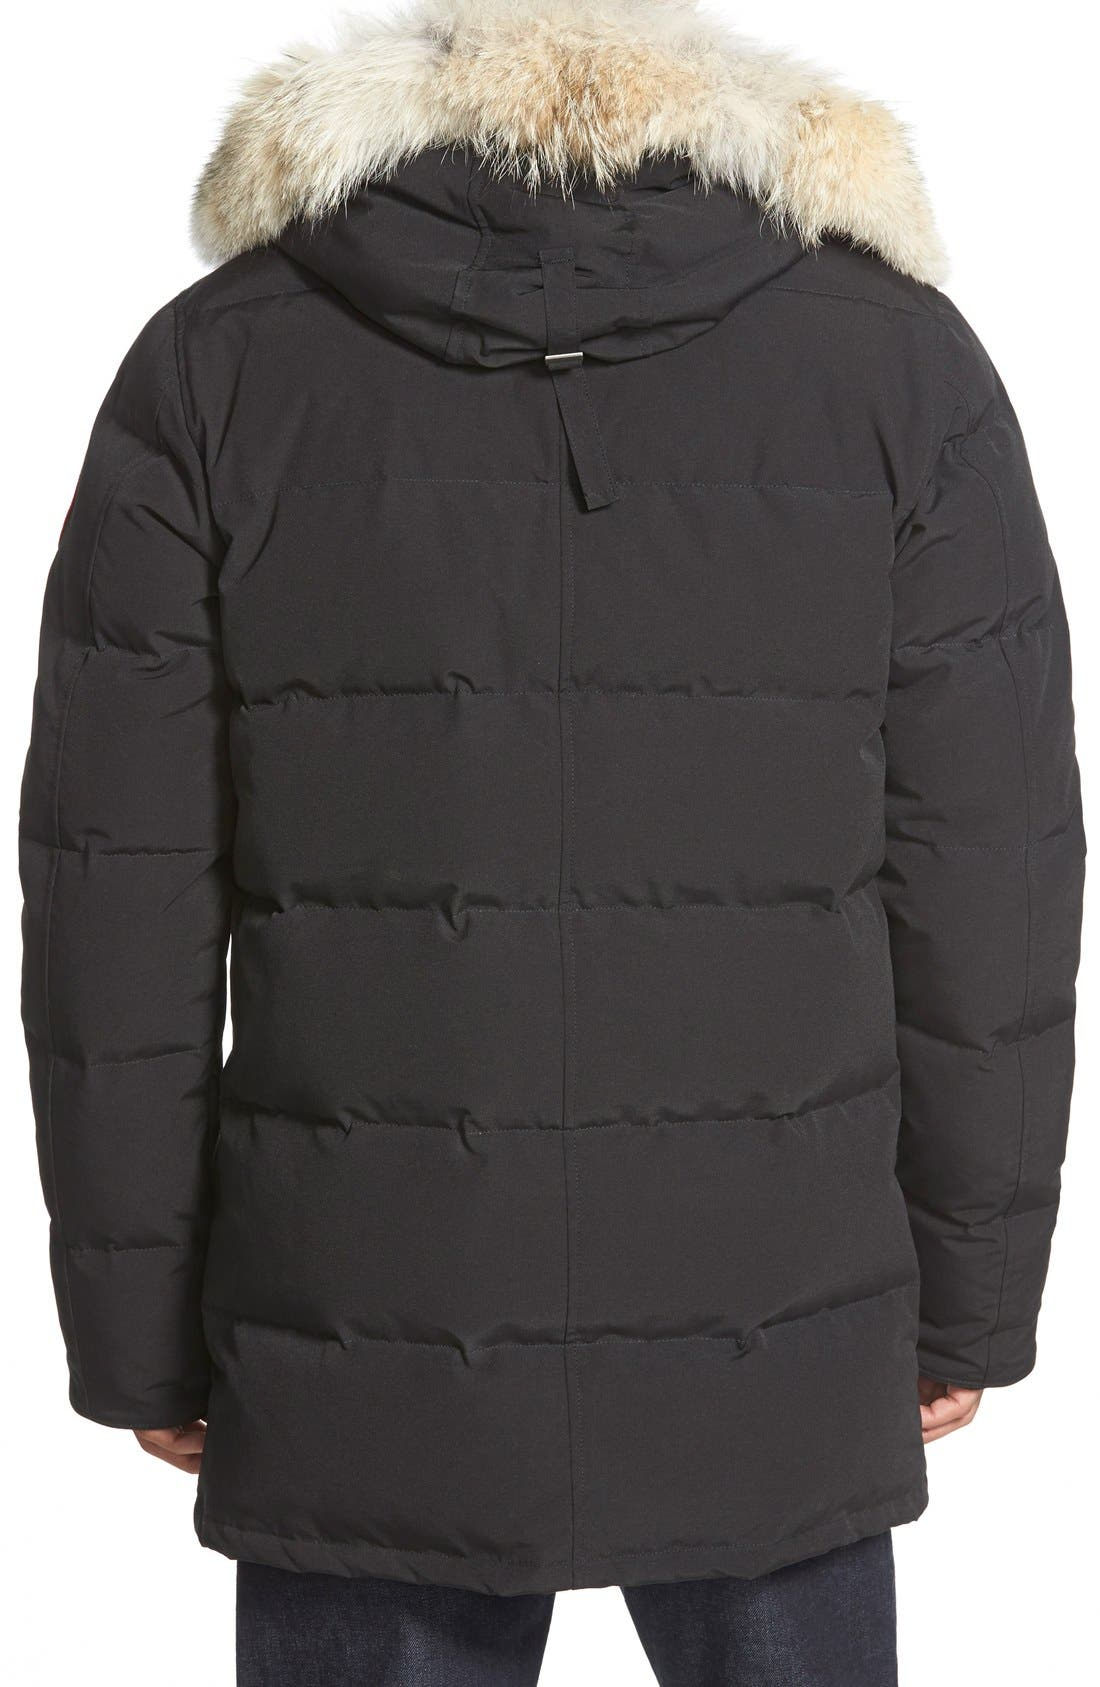 'Carson' Slim Fit Hooded Packable Parka with Genuine Coyote Fur Trim,                             Alternate thumbnail 6, color,                             GRAPHITE